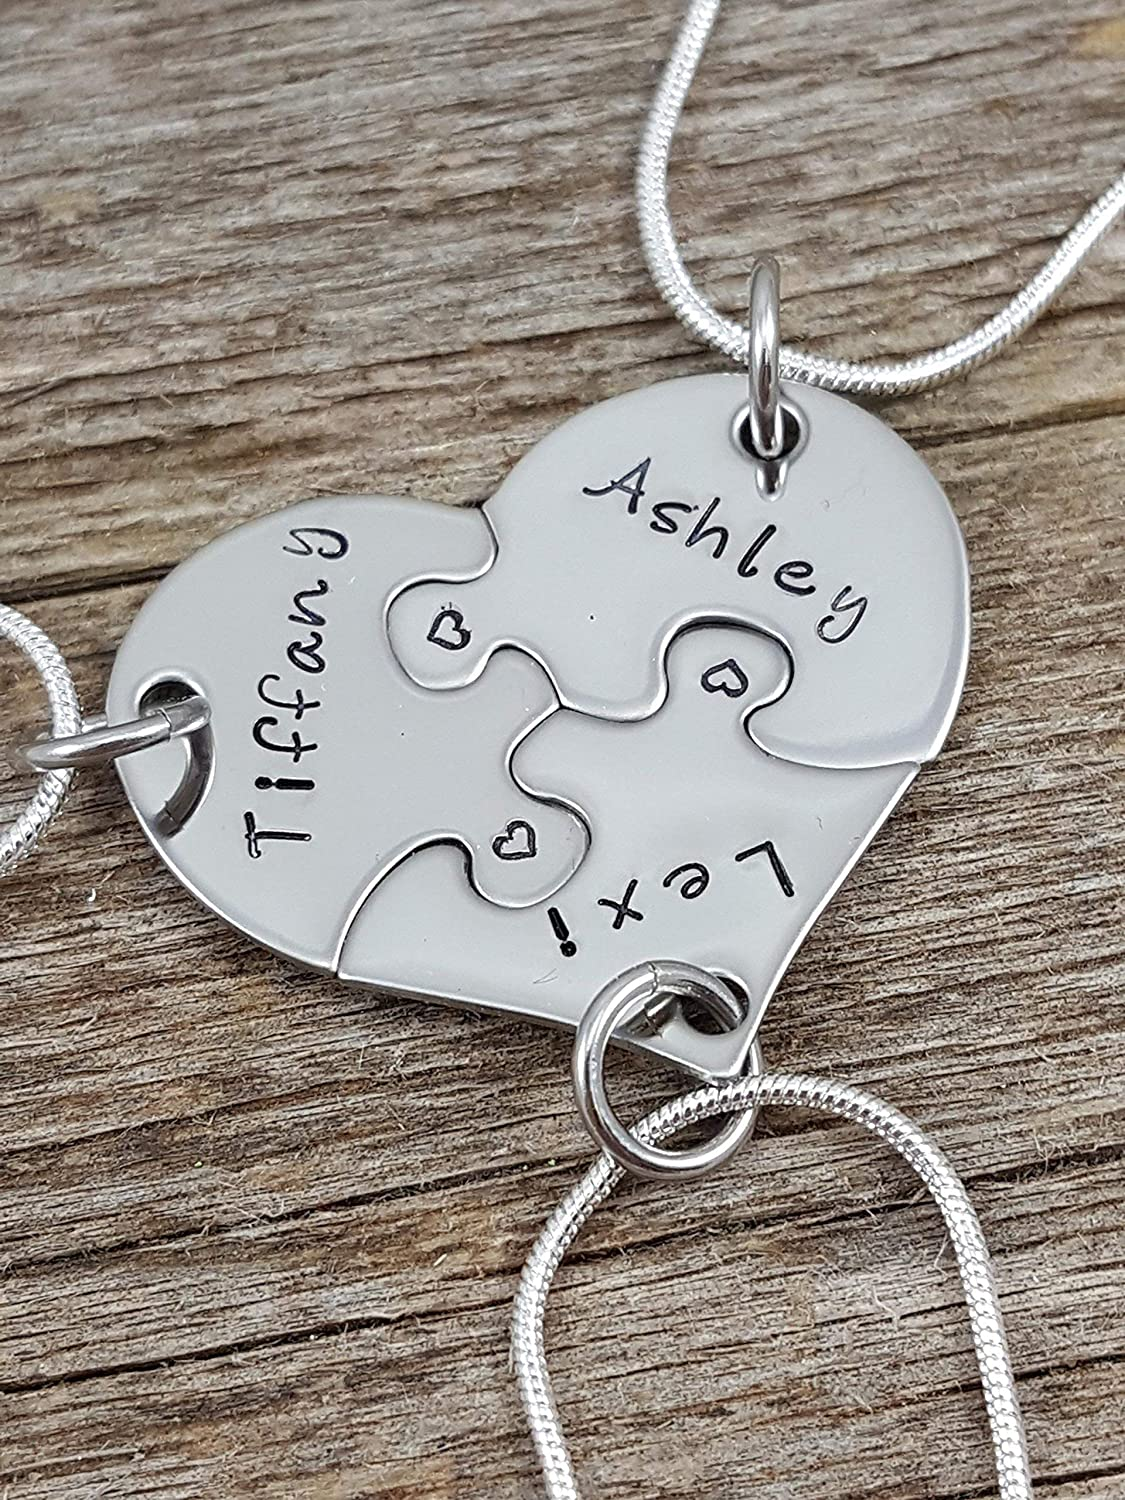 Best Friends Necklace set, 3 piece heart puzzle necklace set, Sorority sisters jewelry, Sister gifts, Hand stamped jewelry, Custom necklaces, Personalized jewelry.